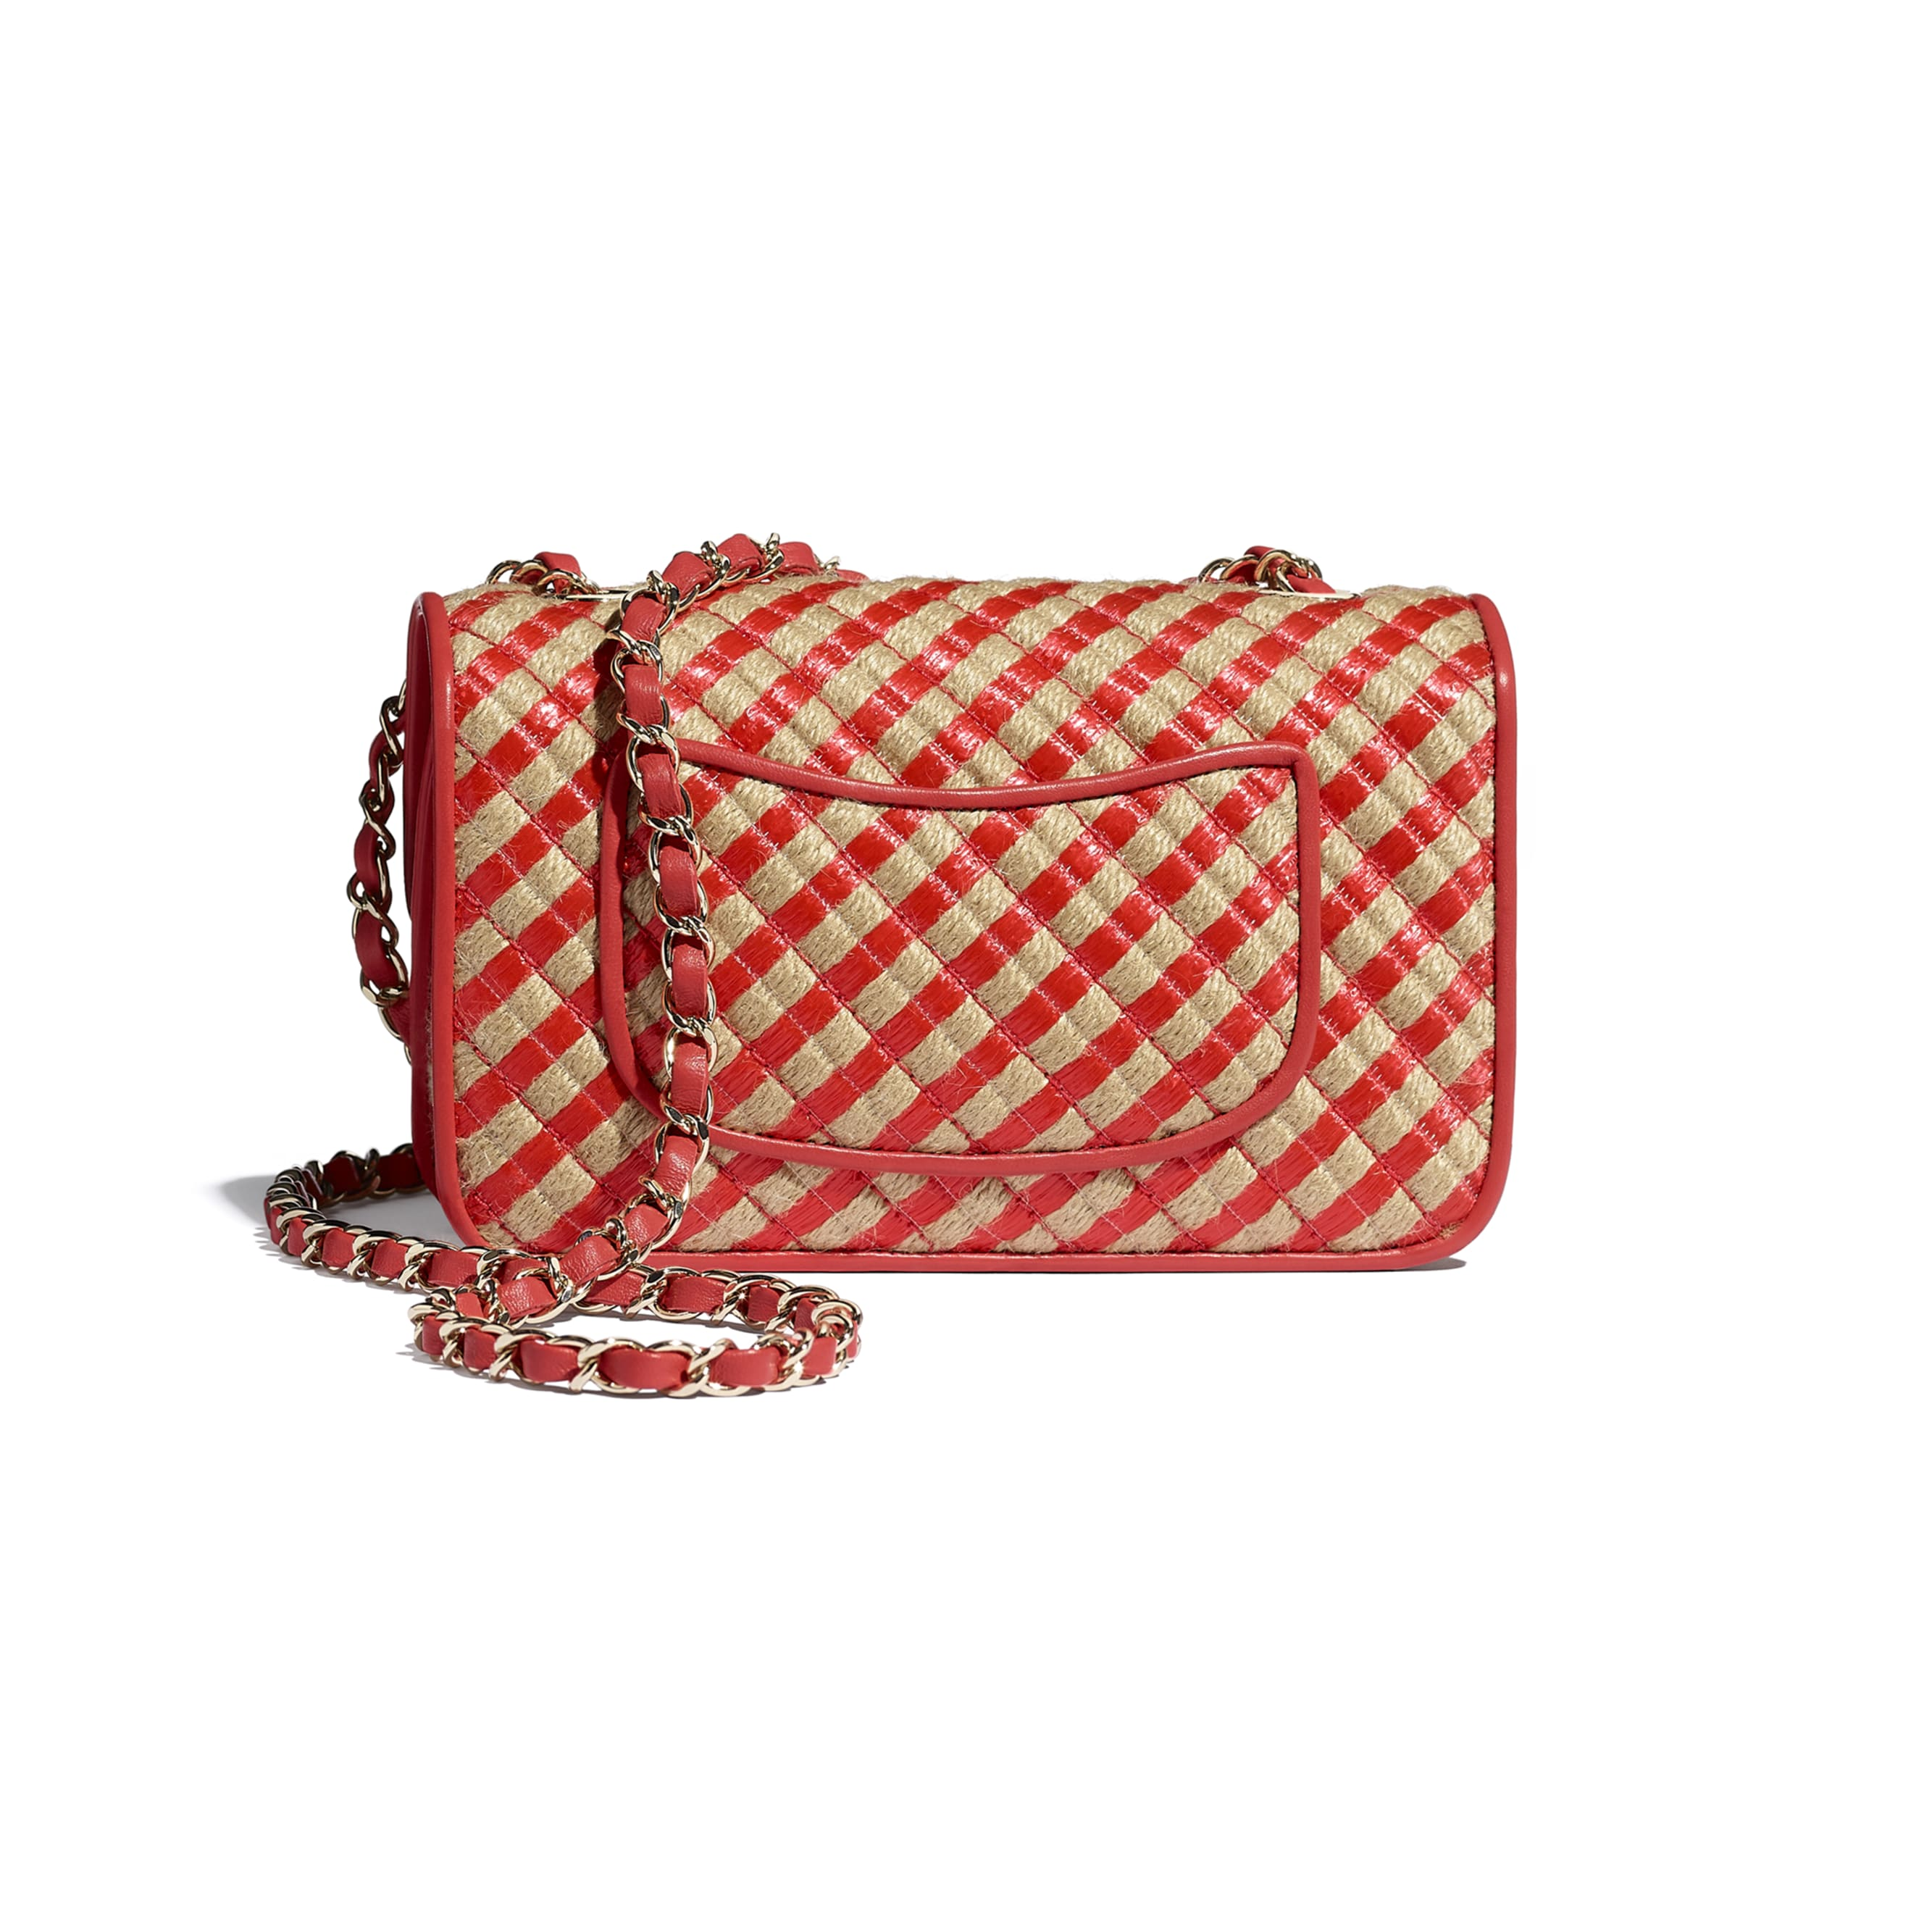 Small Flap Bag - Red & Beige - Raffia, Jute Thread & Gold-Tone Metal - CHANEL - Alternative view - see standard sized version